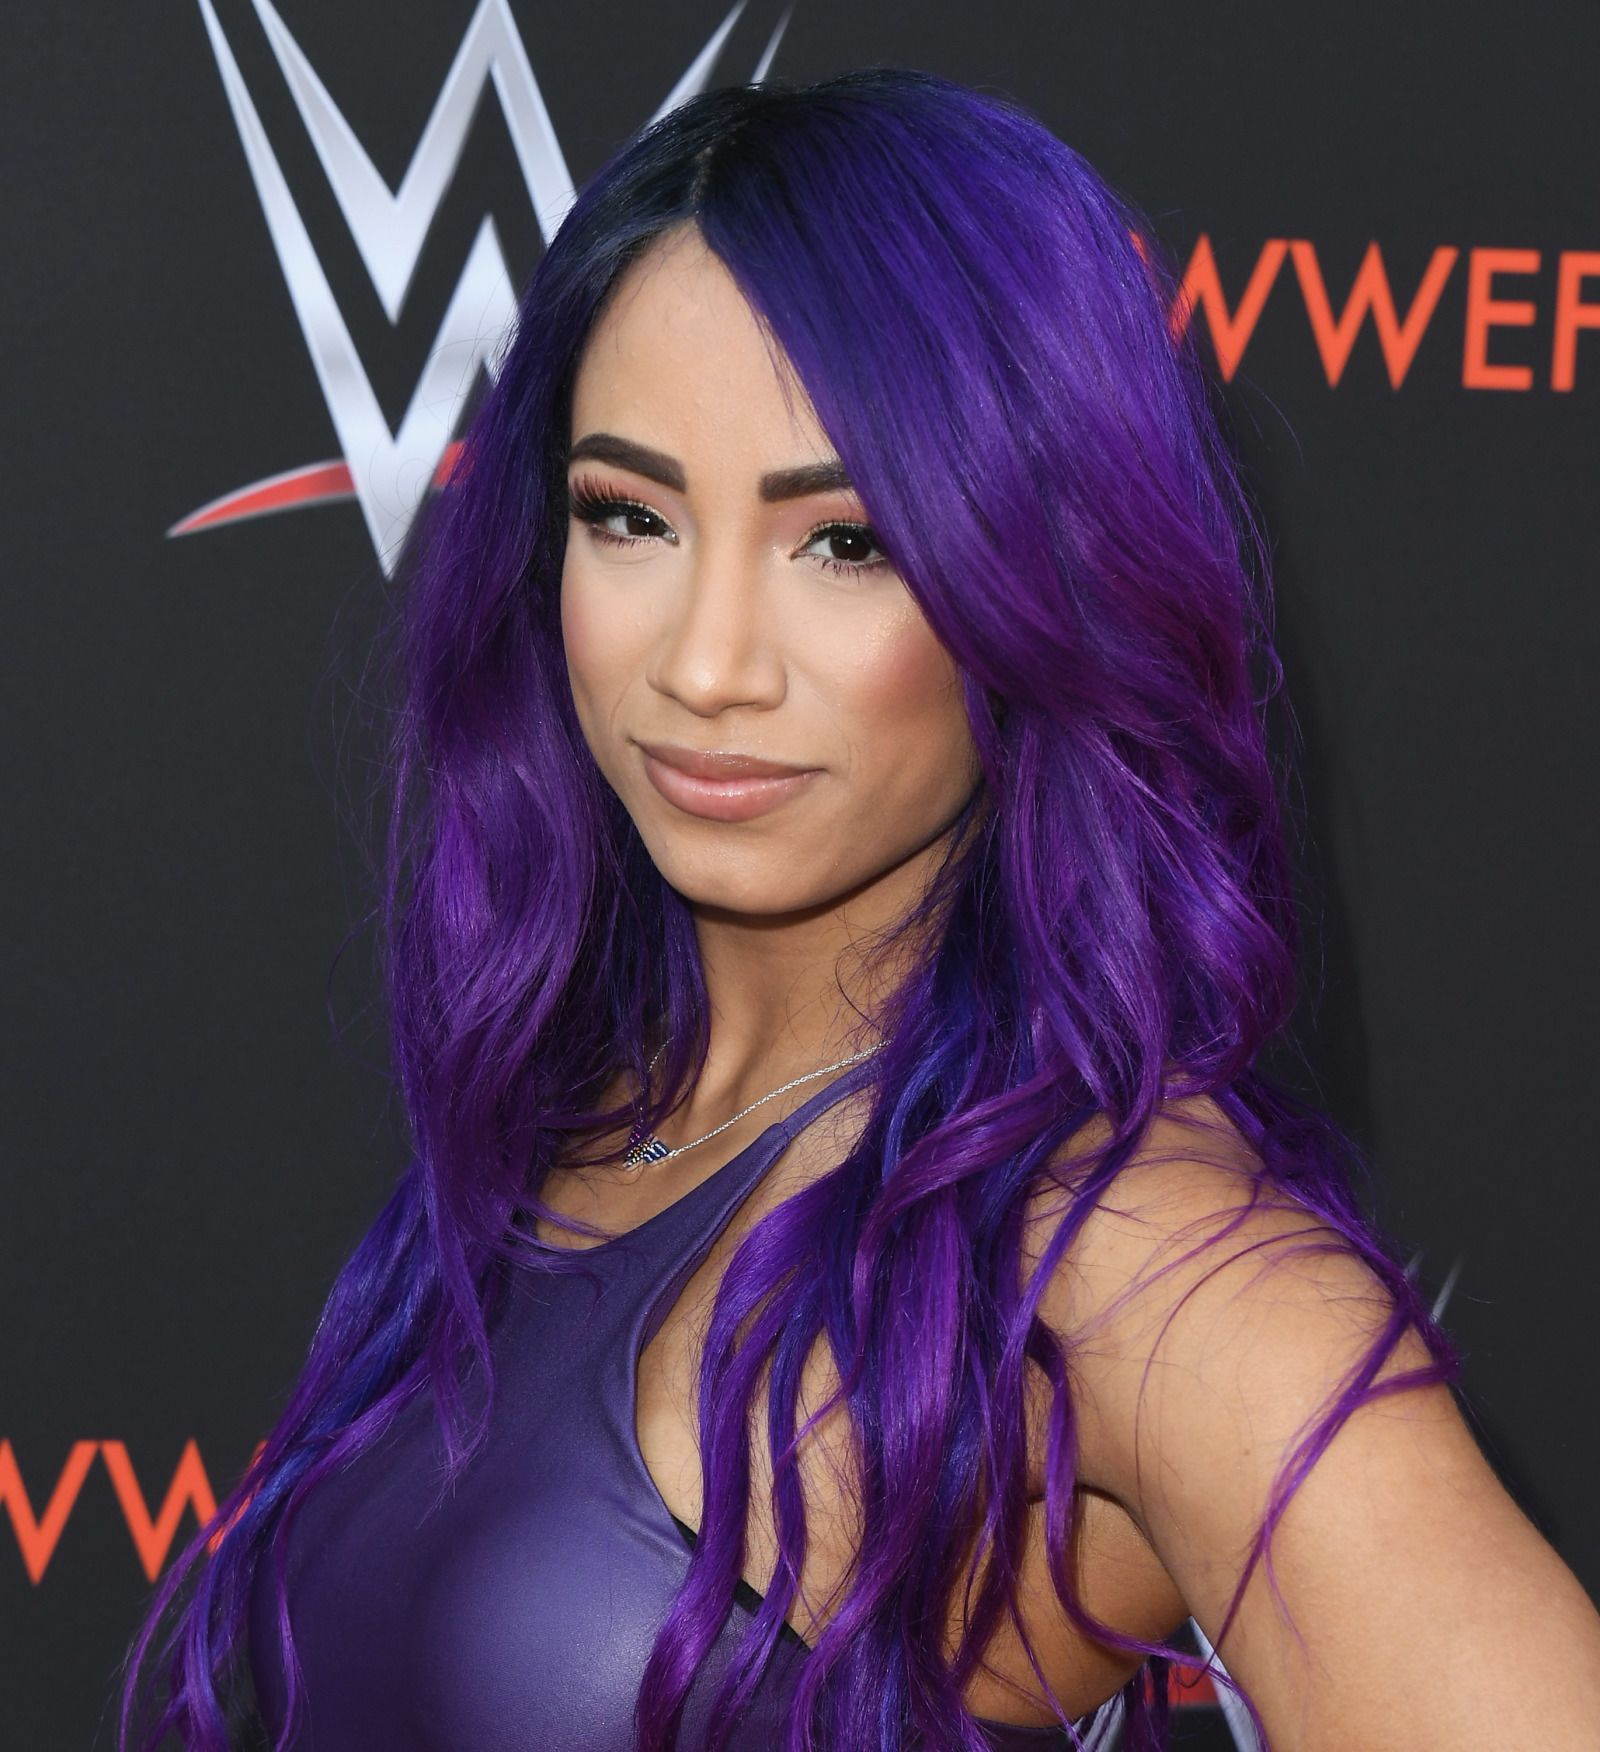 When rumours first began circulating that Sasha Banks was unhappy at WWE, the internet wrestling community was divided in its response. But with Jon Moxley...